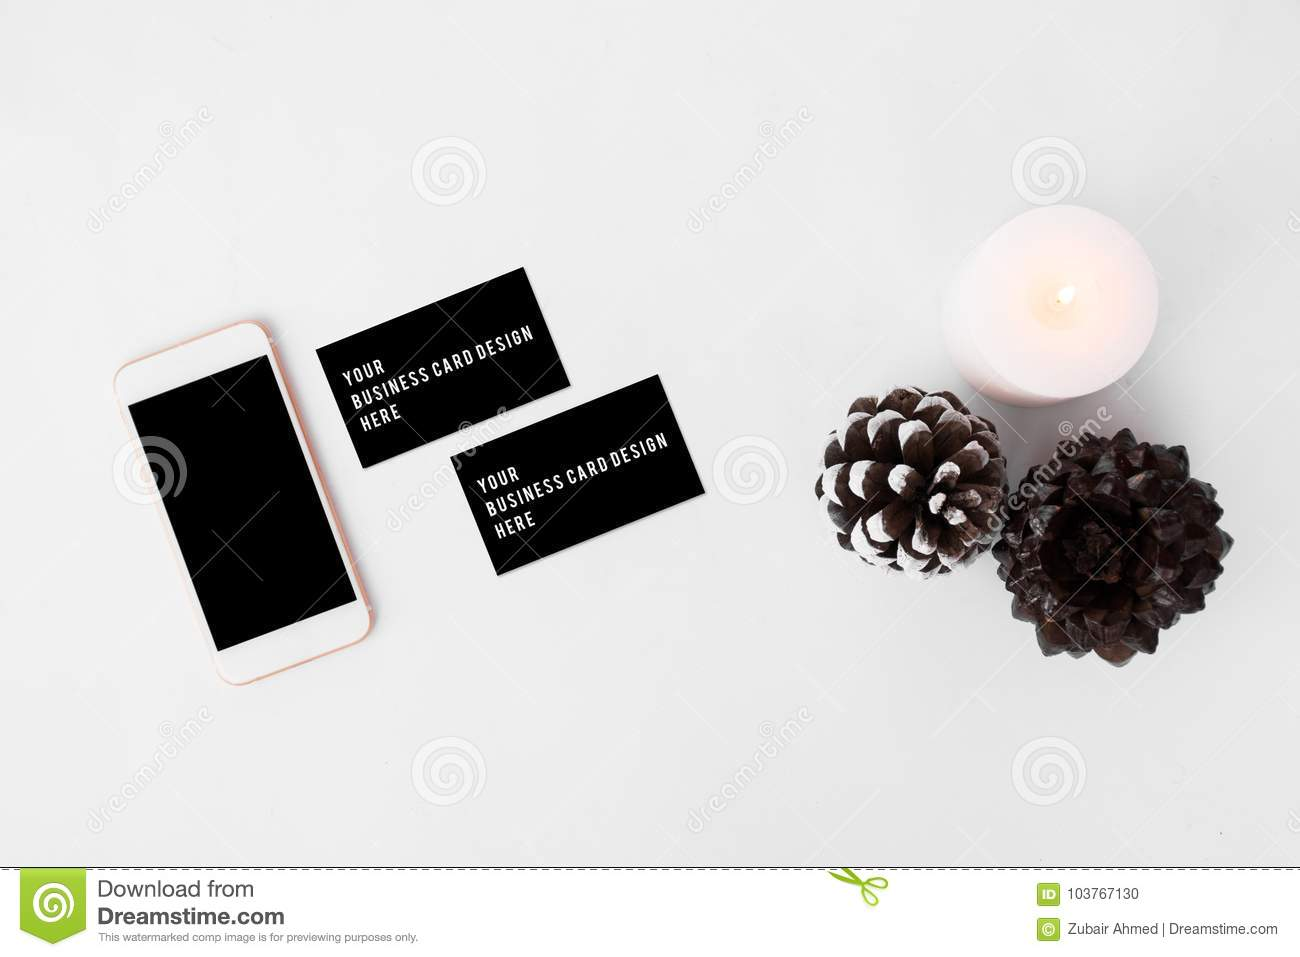 Smartphone business cards christmas composition stylish arrangement download smartphone business cards christmas composition stylish arrangement of cones and candle on white background colourmoves